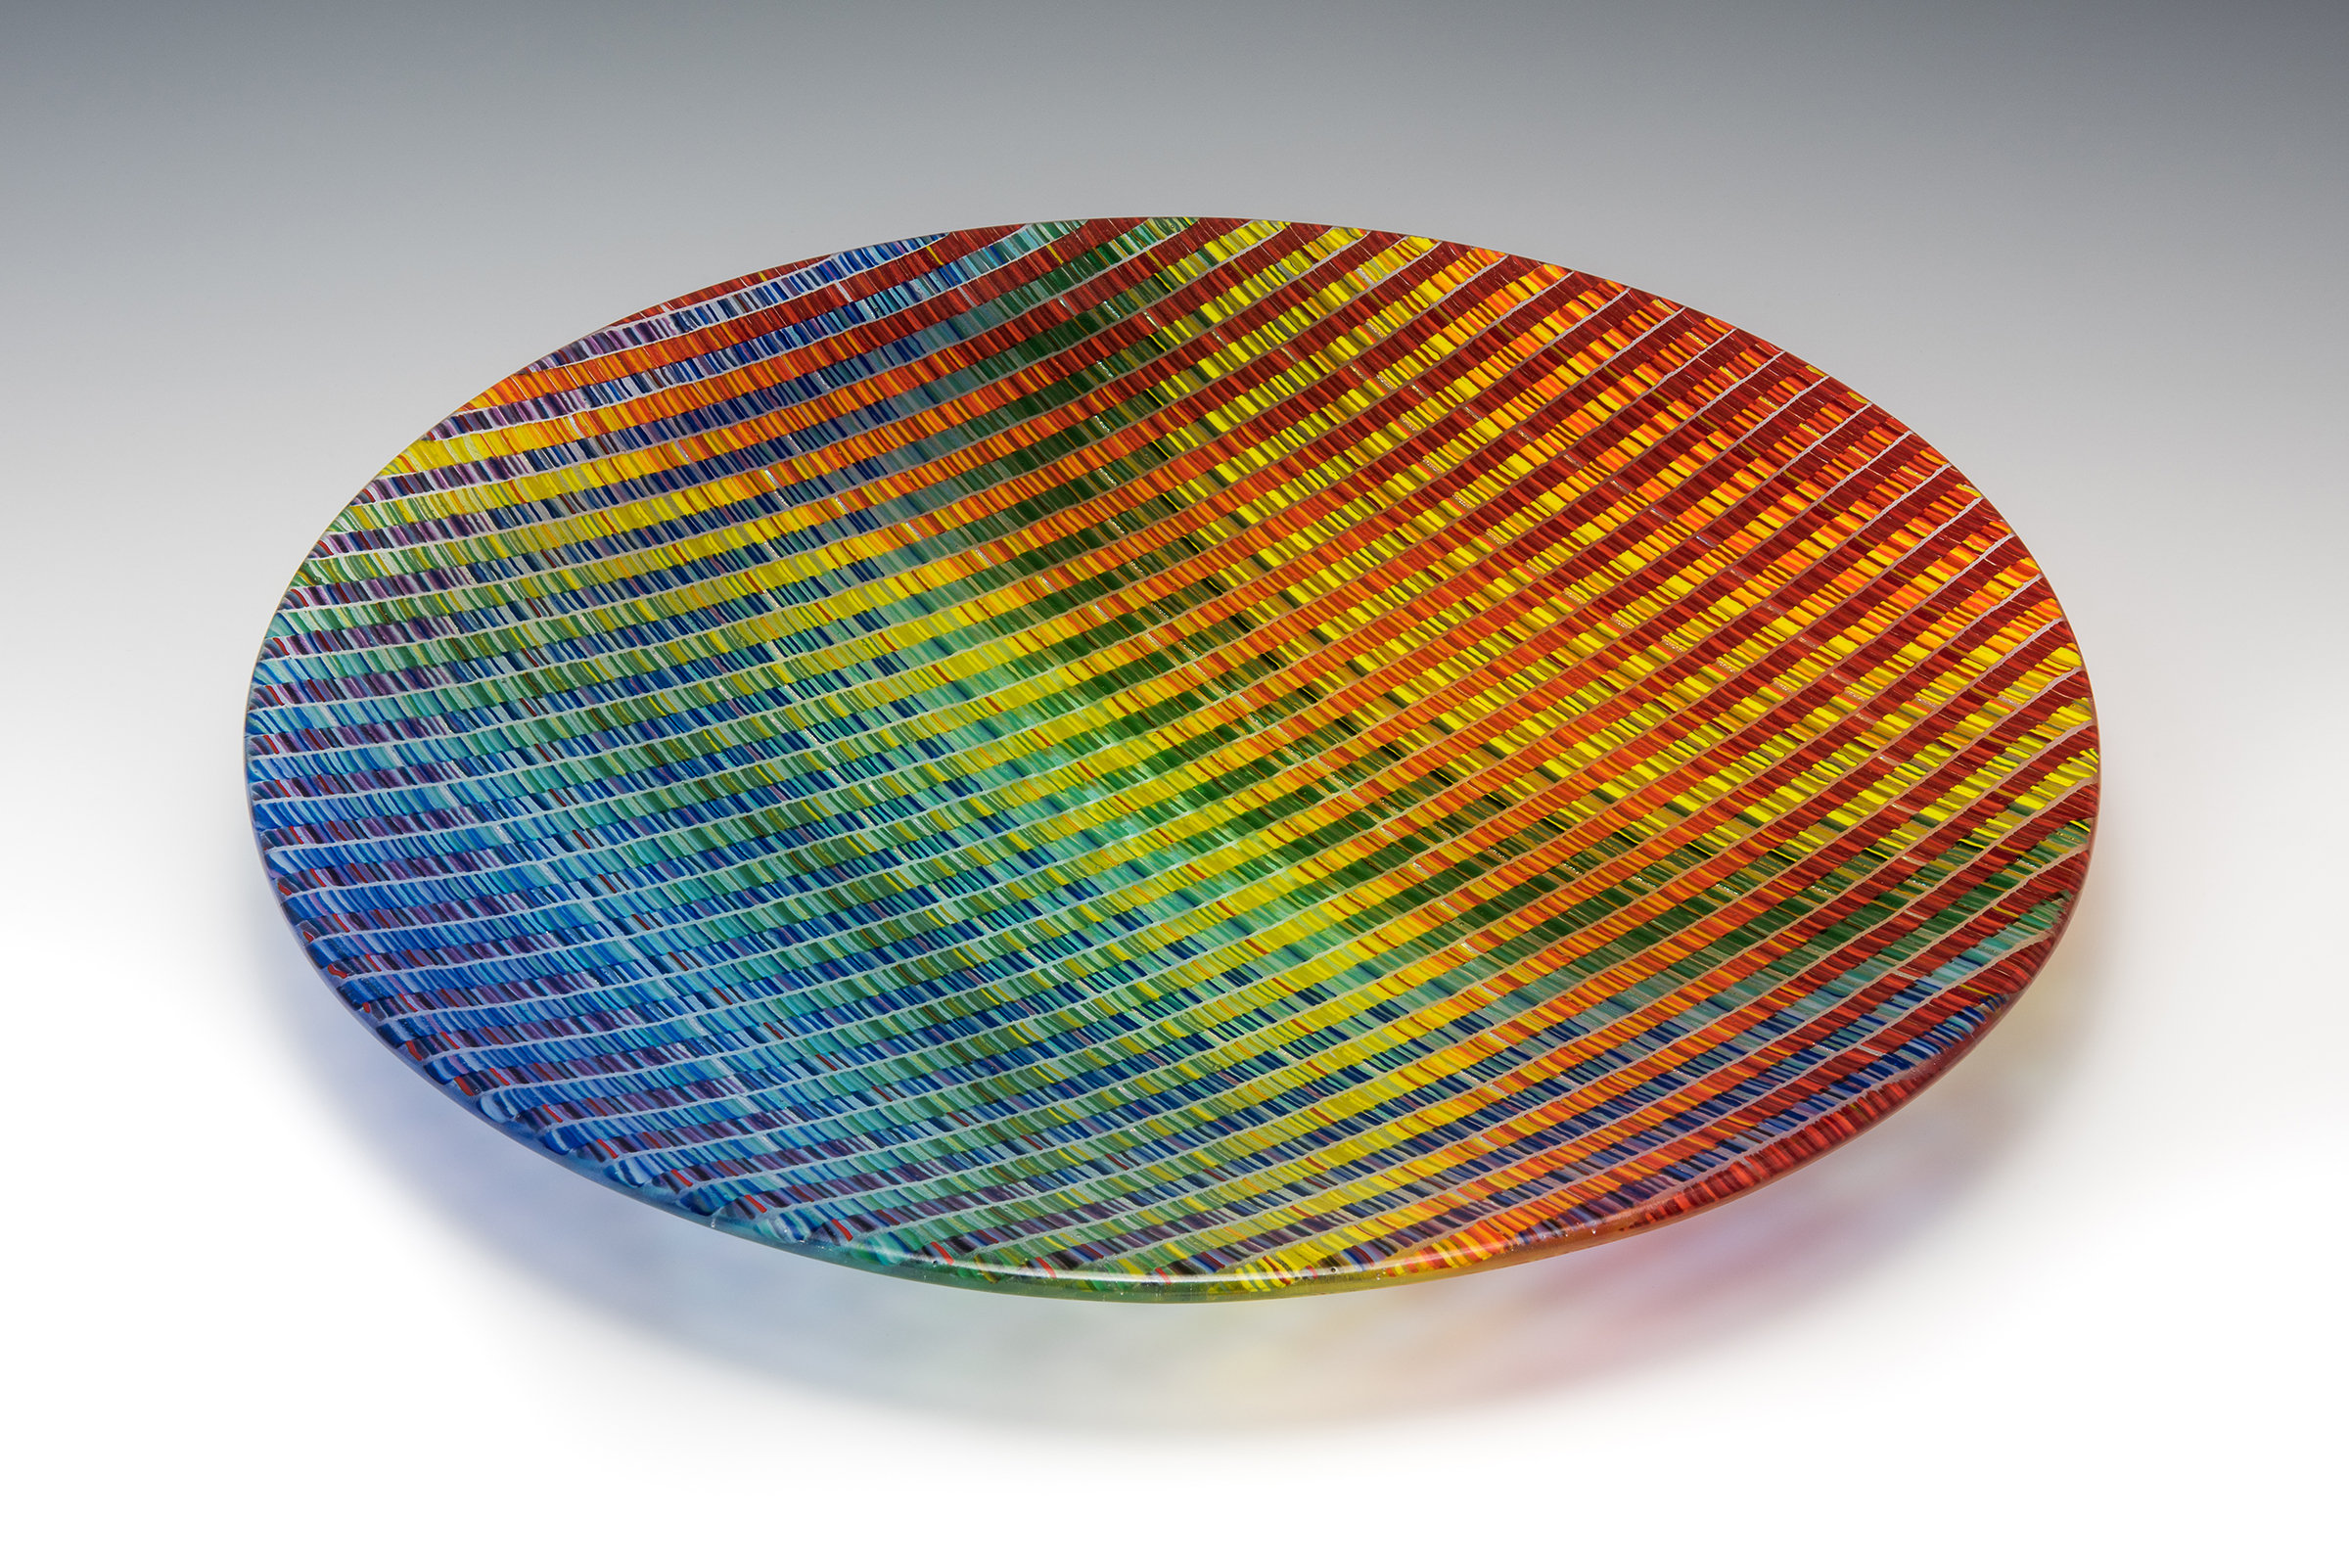 Prismatic Tapestry Bowl By Richard Parrish Art Glass Bowl